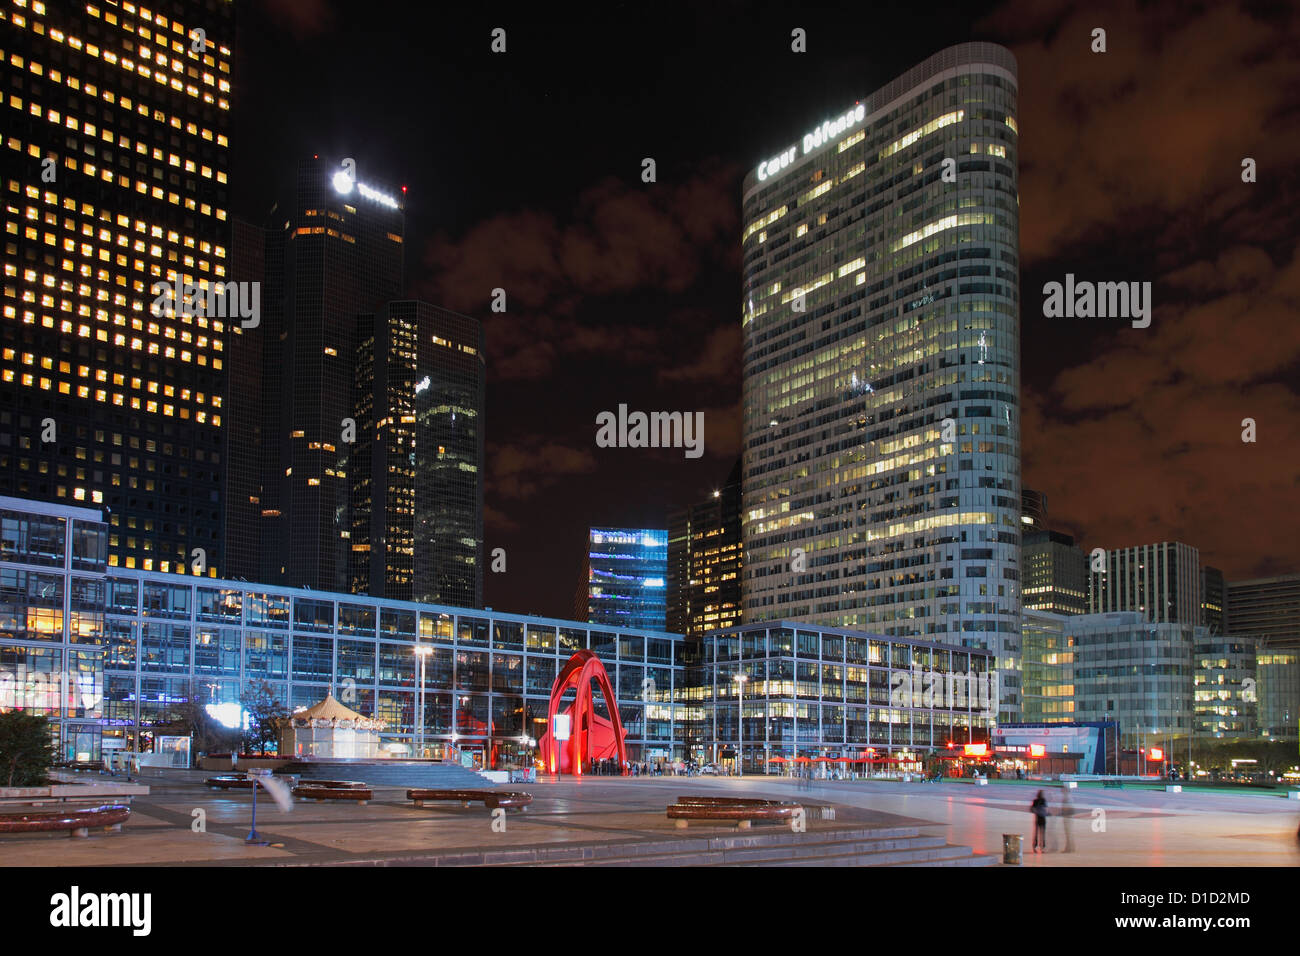 Tower Coeur Défense and headquarter of oil company TOTAL in the financial district La Défense in Paris - Stock Image